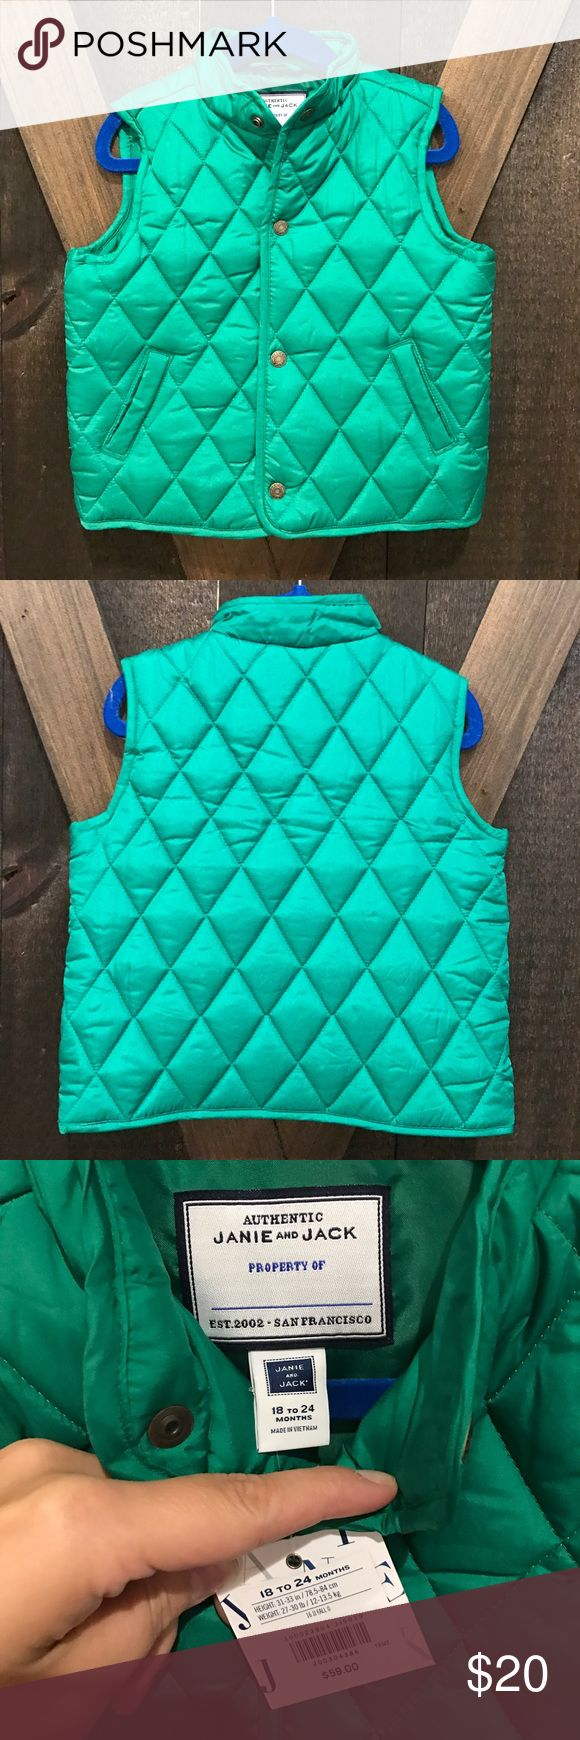 Janie and Jack Green Quilted Vest Janie and jack Green Quilted Vest! NWT Janie and Jack Jackets & Coats Vests